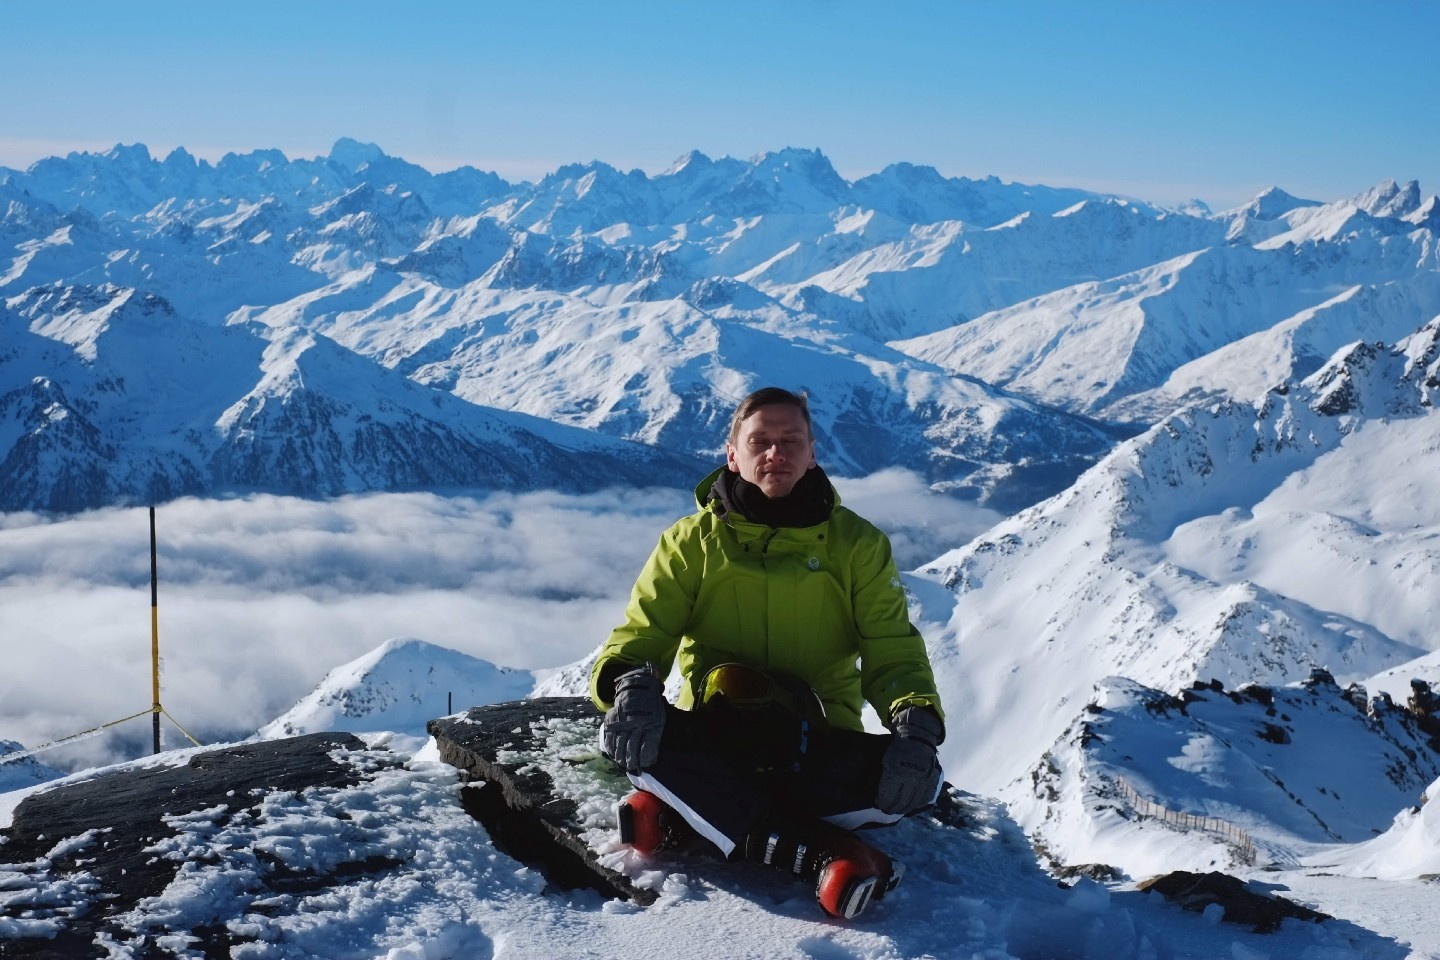 Me practicing at 10,000ft. Photo by me from the French Alps.